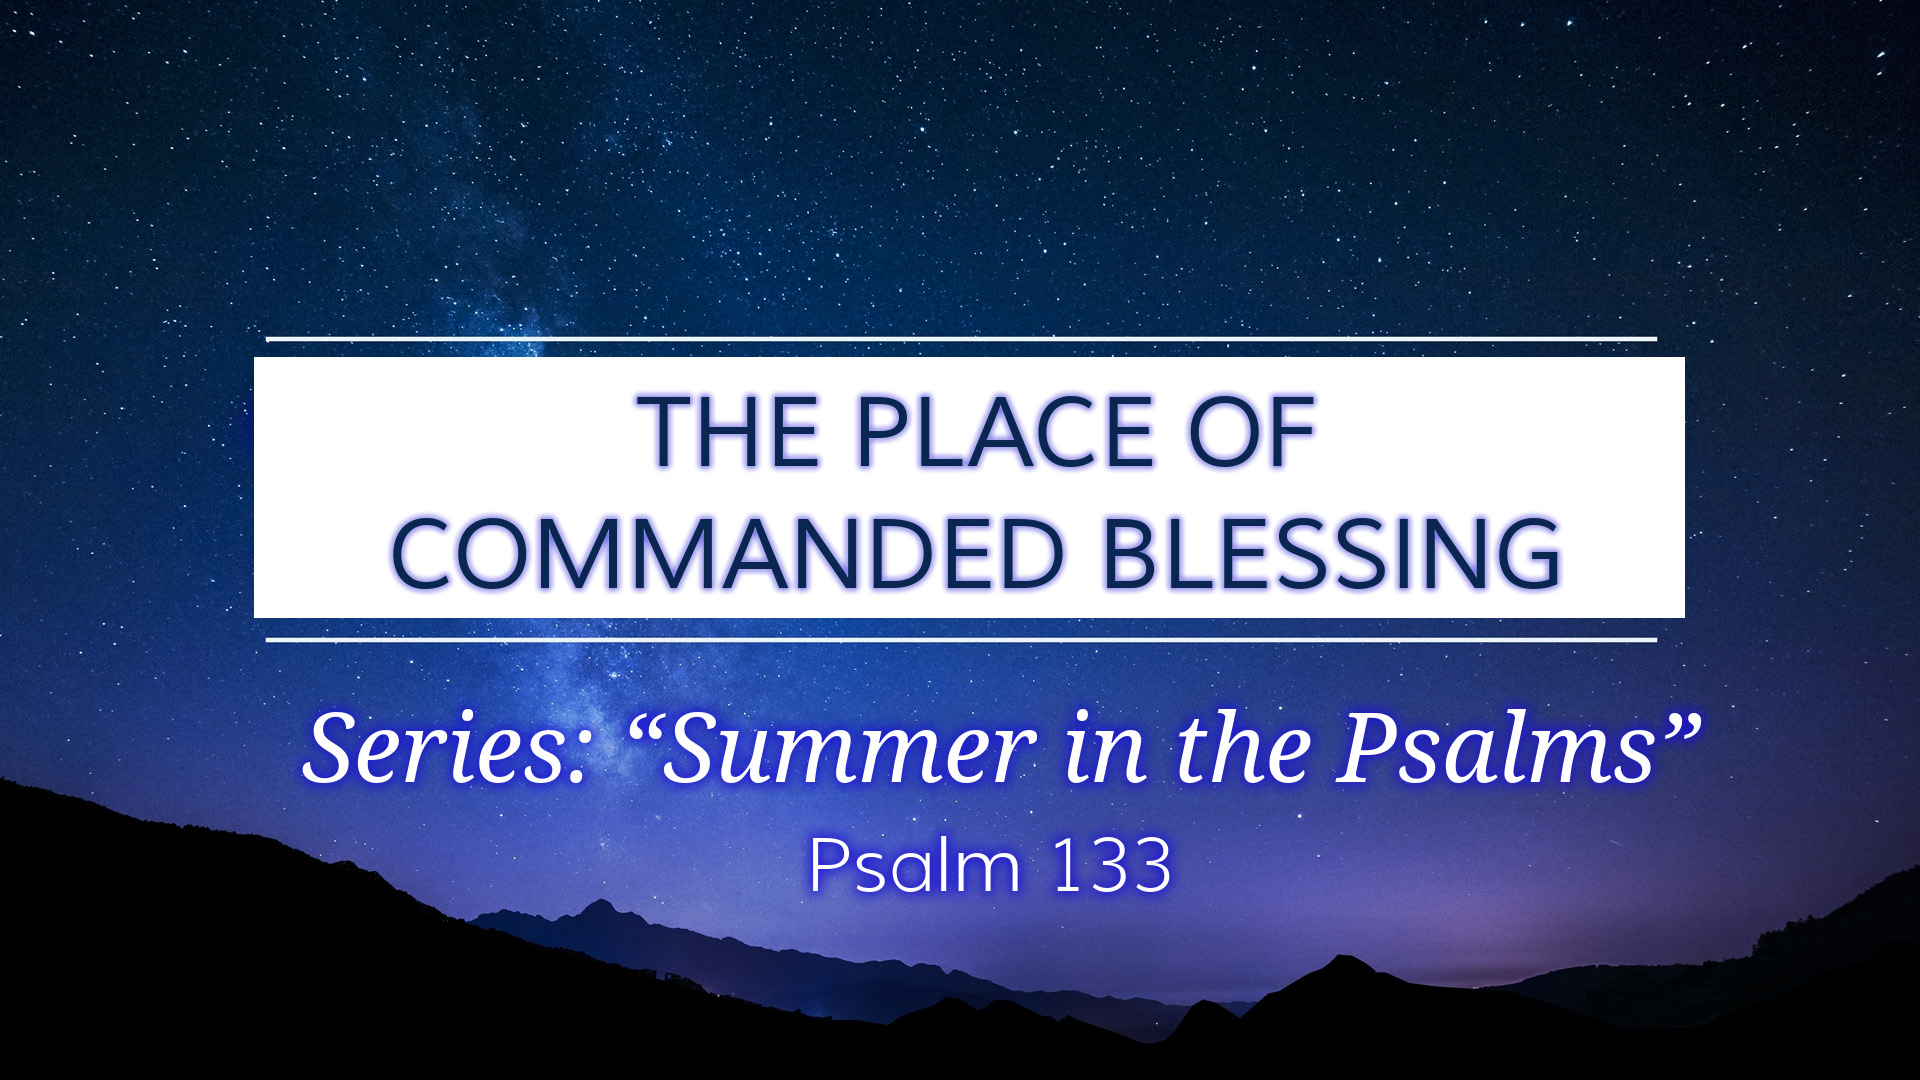 Image for the sermon The Place of Commanded Blessing